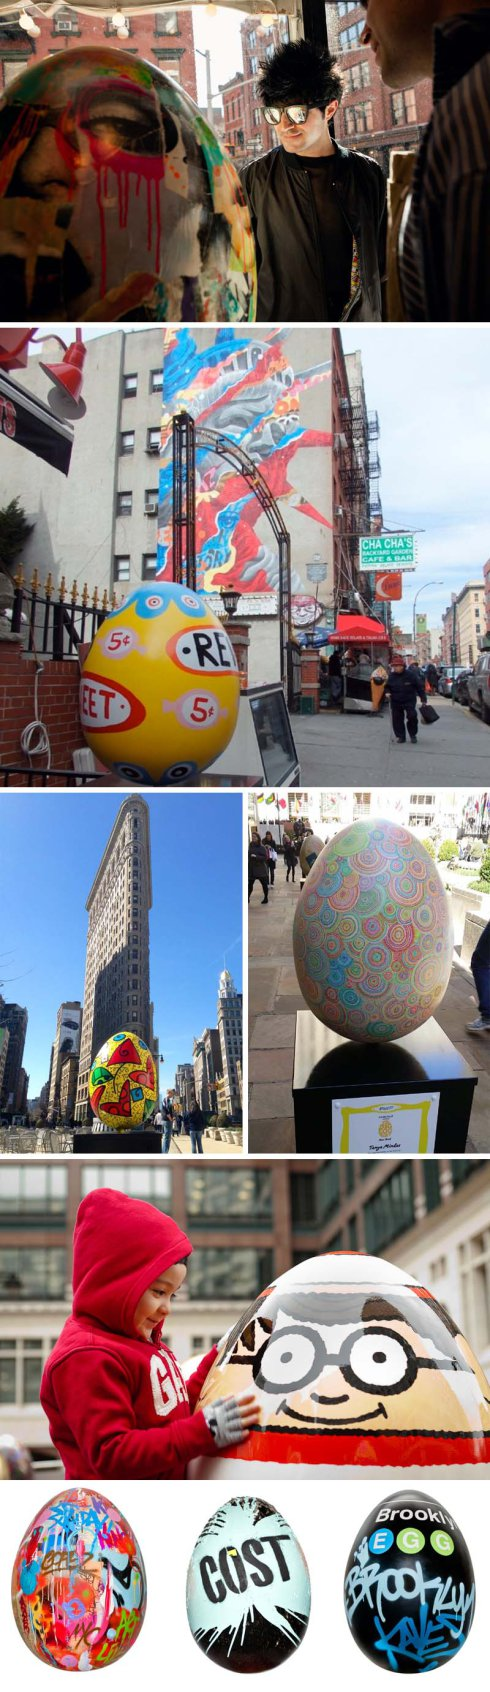 the-big-egg-hunt-ny_giant-easter-eggs-painted-by-artists-throughout-nyc_3_collabcubed.jpg